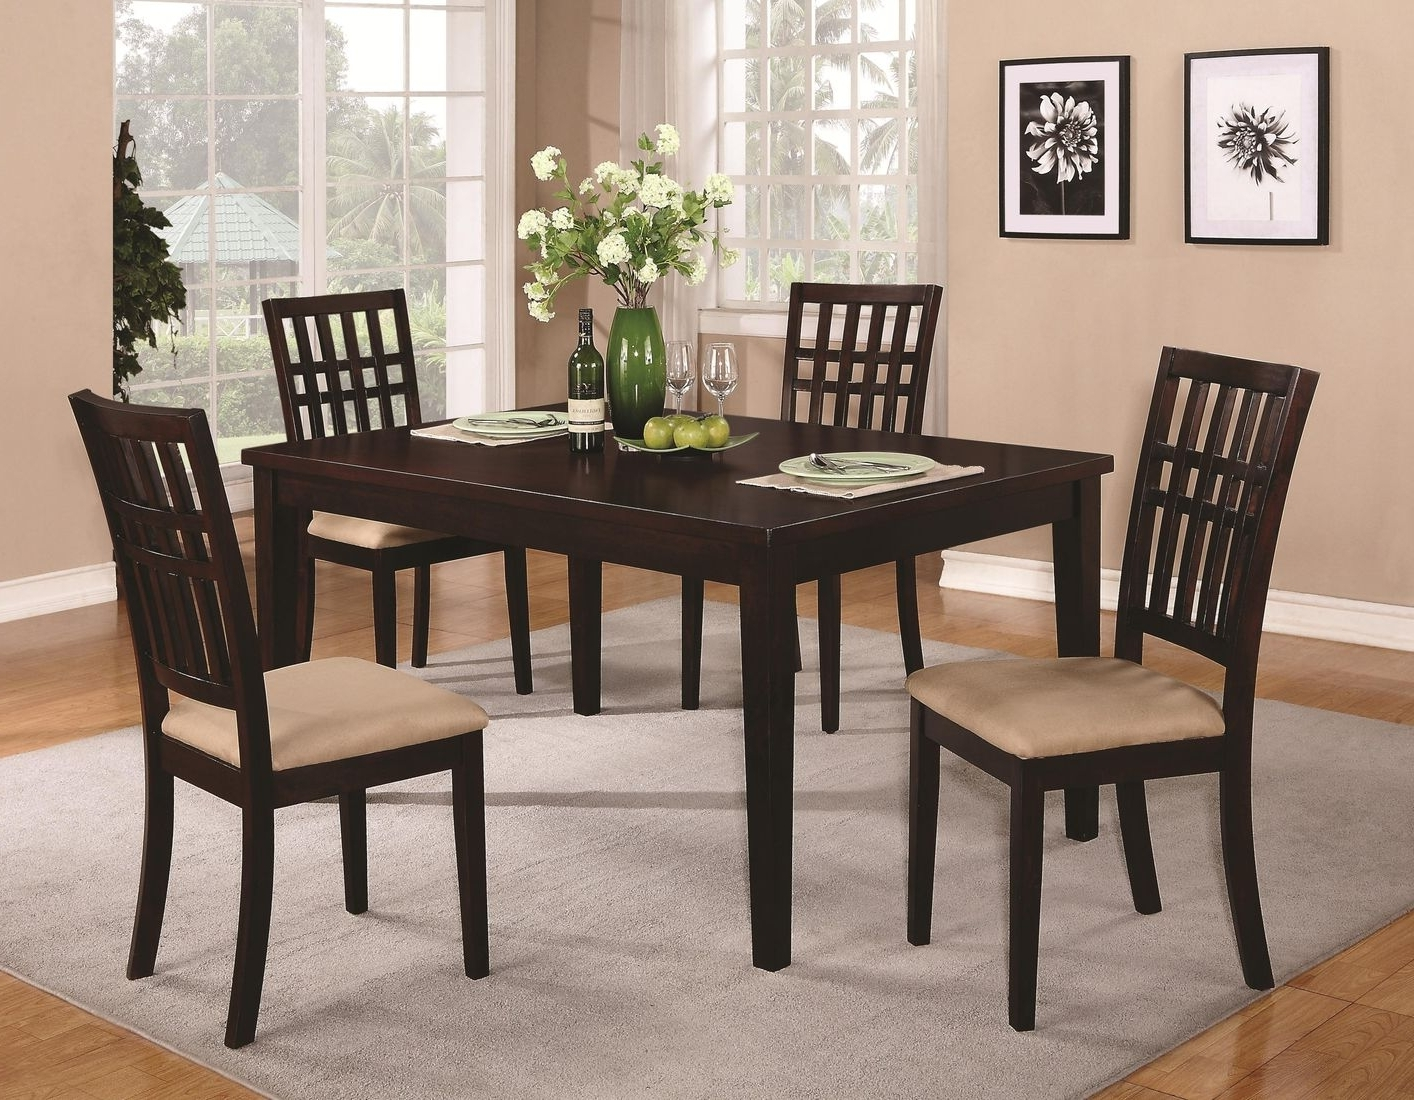 Brandt Dark Cherry Wood Dining Table – Steal A Sofa Furniture Within Well Liked Dining Sofa Chairs (View 1 of 20)